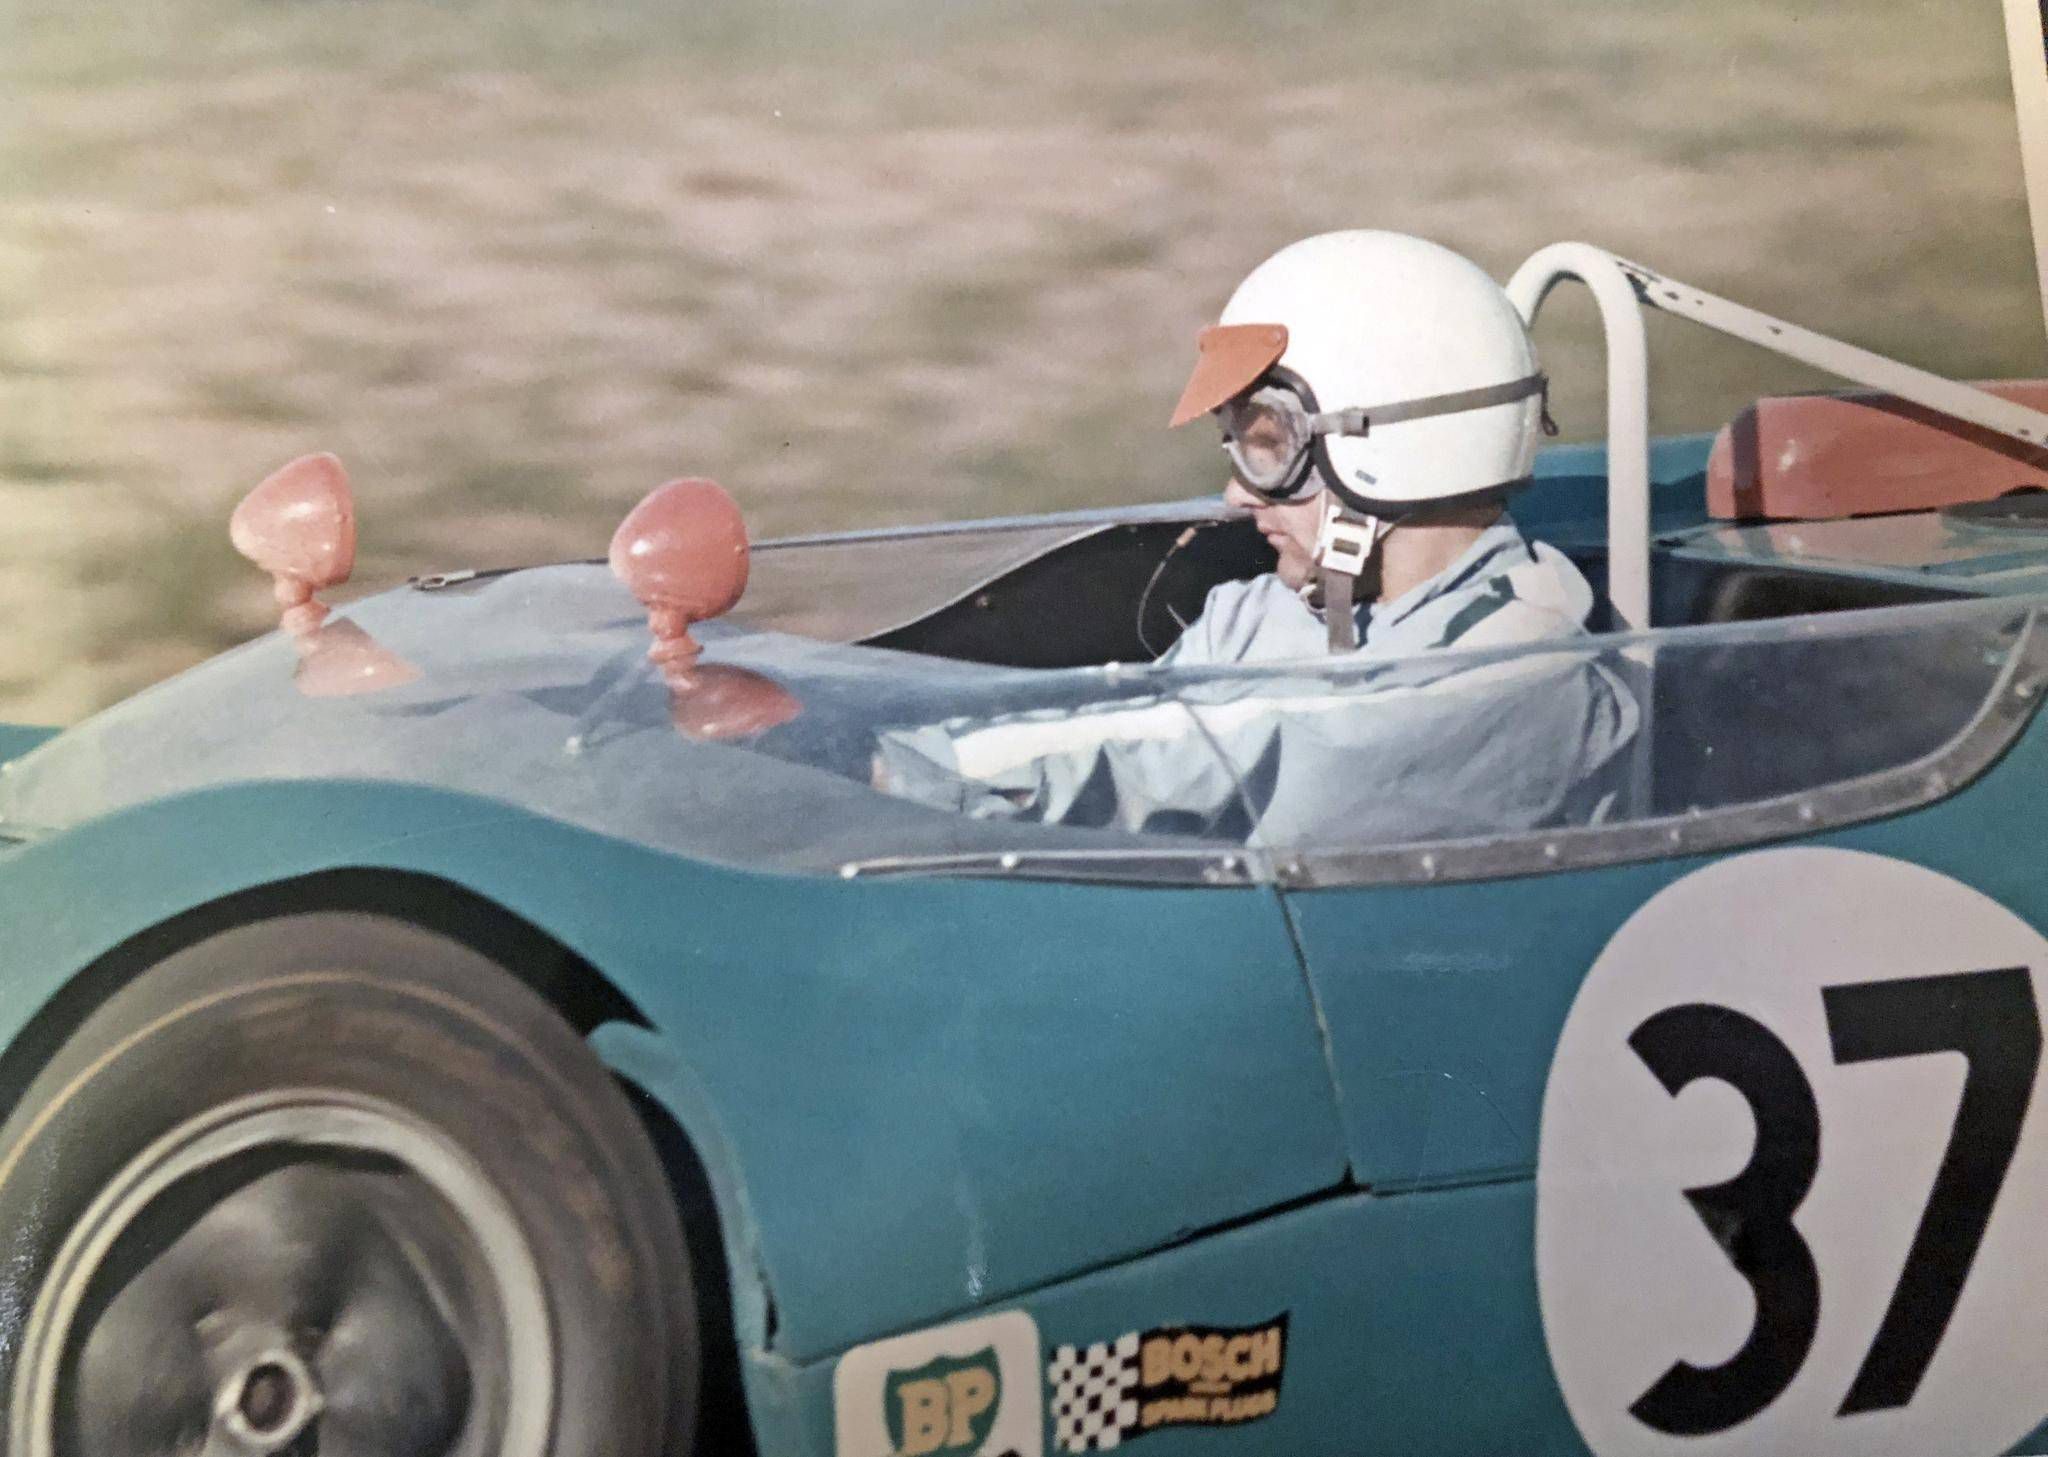 Horst Kroll, Can-Am champion at age 50, raced on a shoestring - The ...